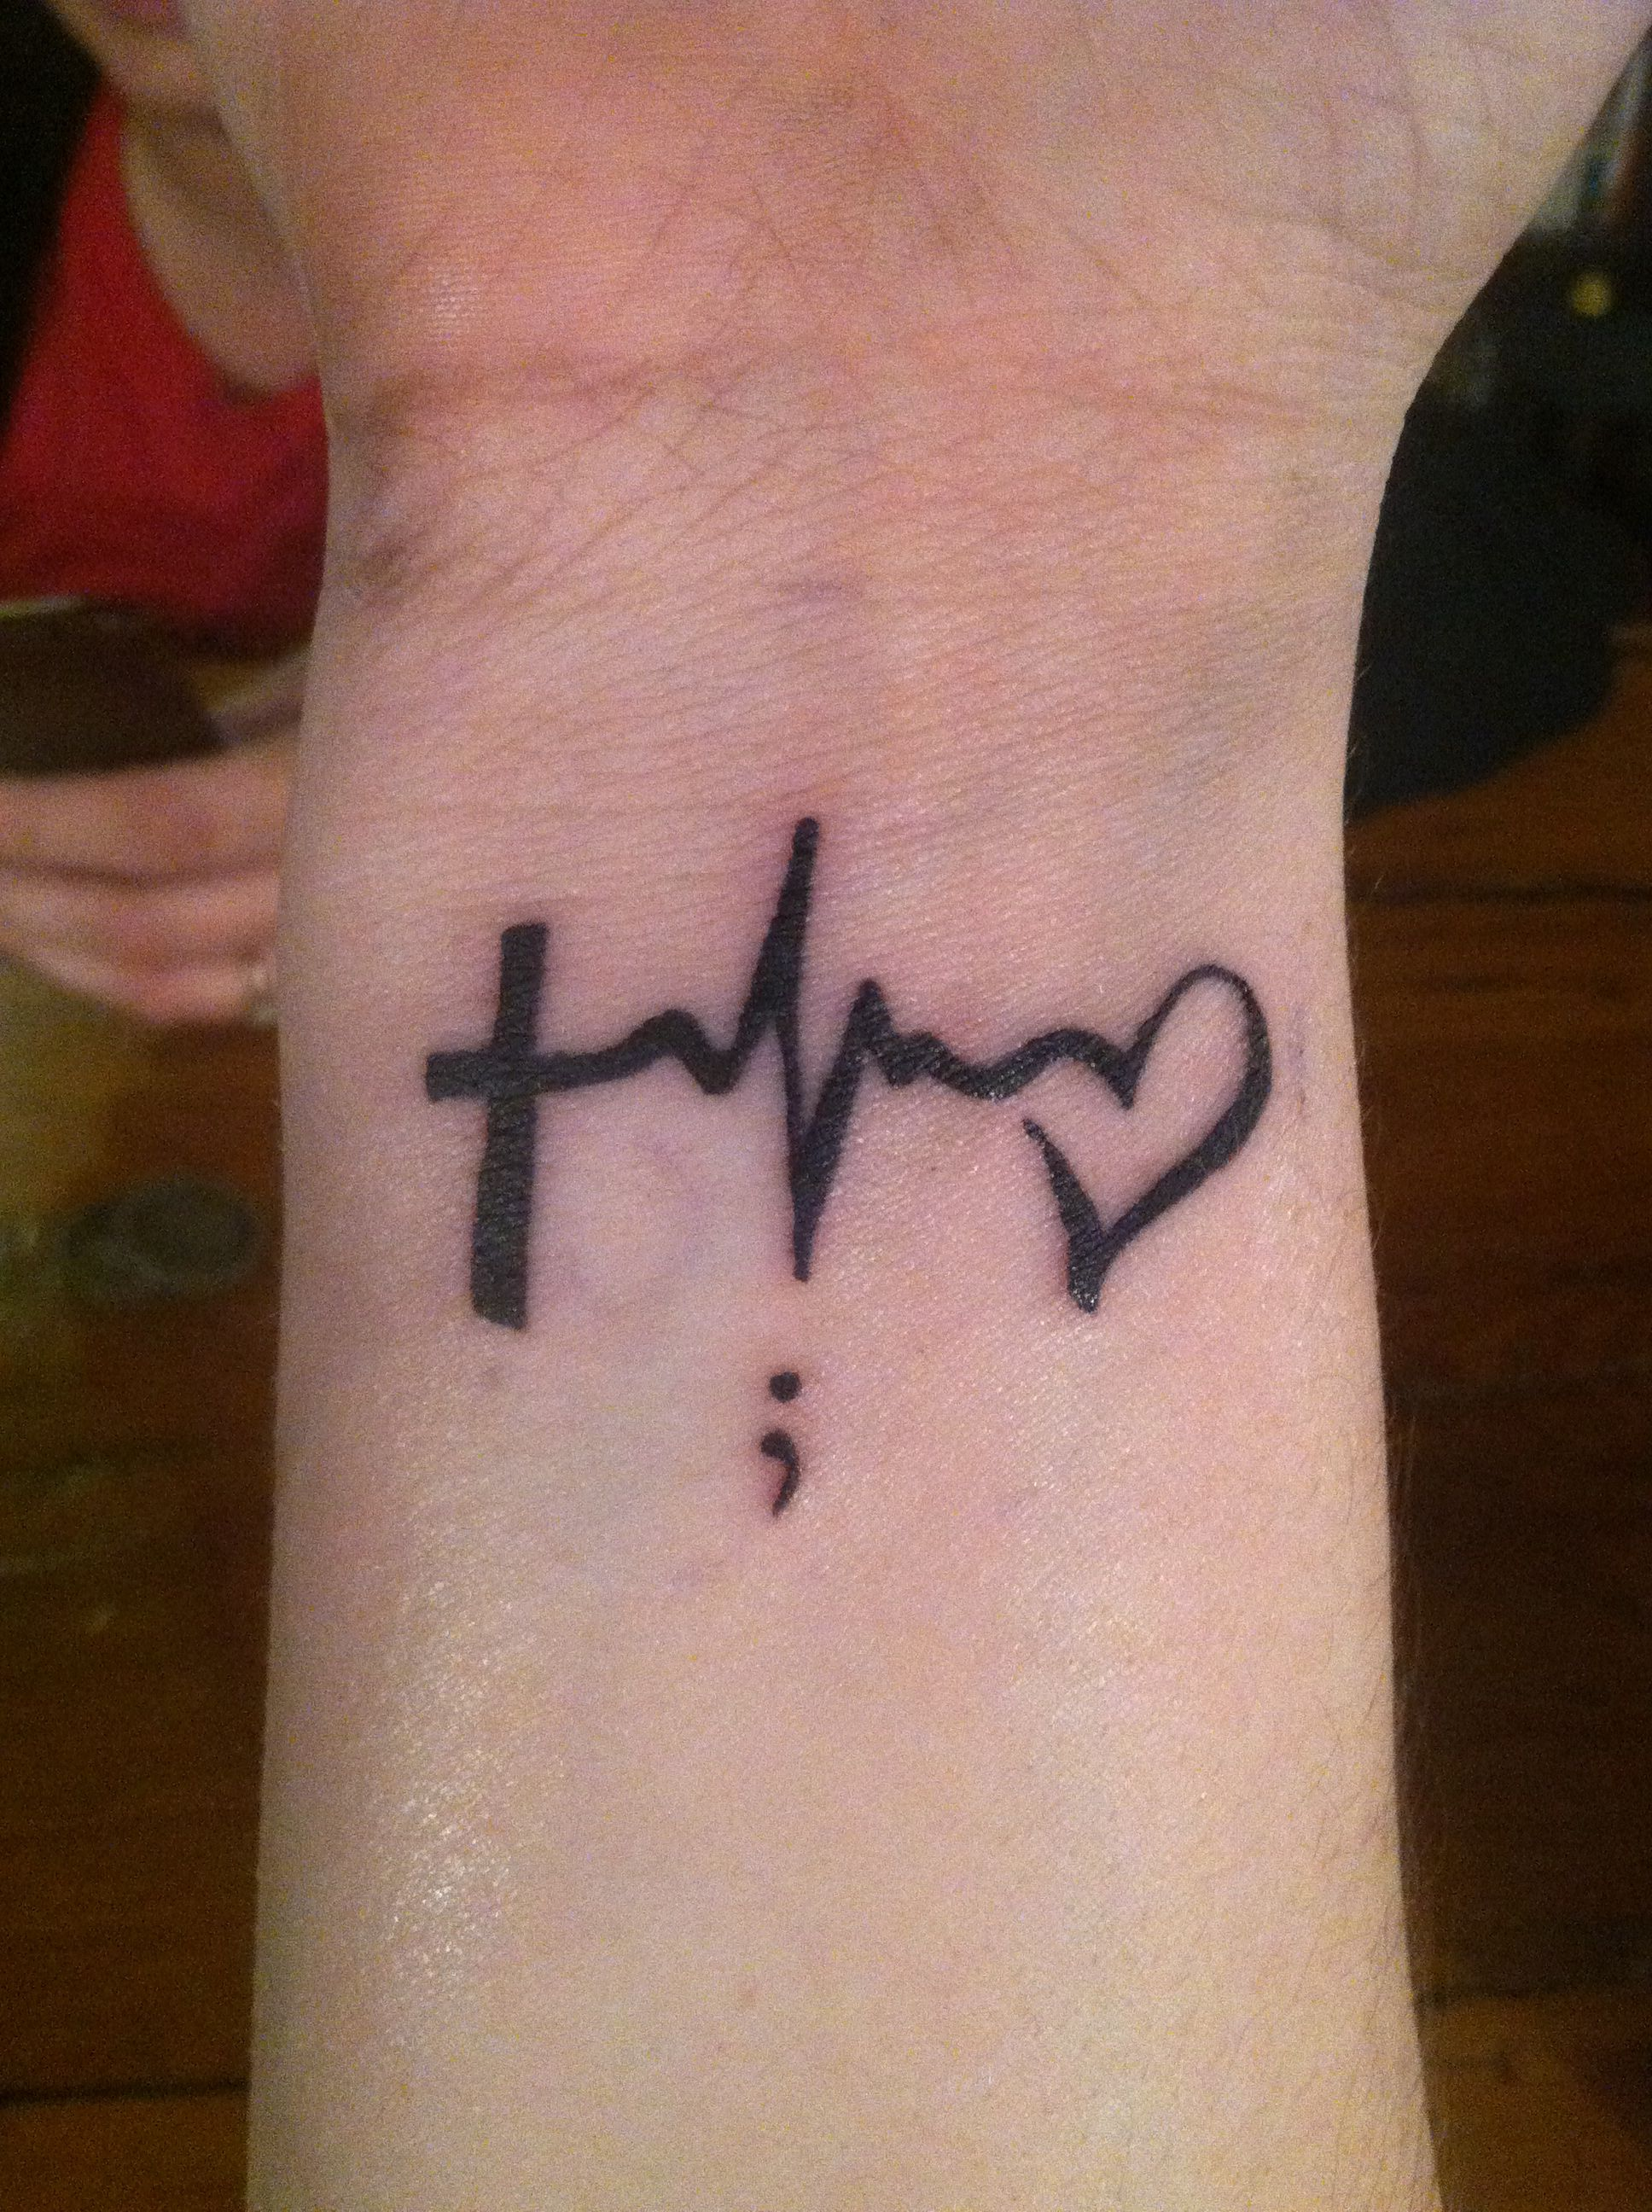 2a6cf32ad2372 Faith, Hope, and Love with a semi colon meaning you could've ended  something but chose not to